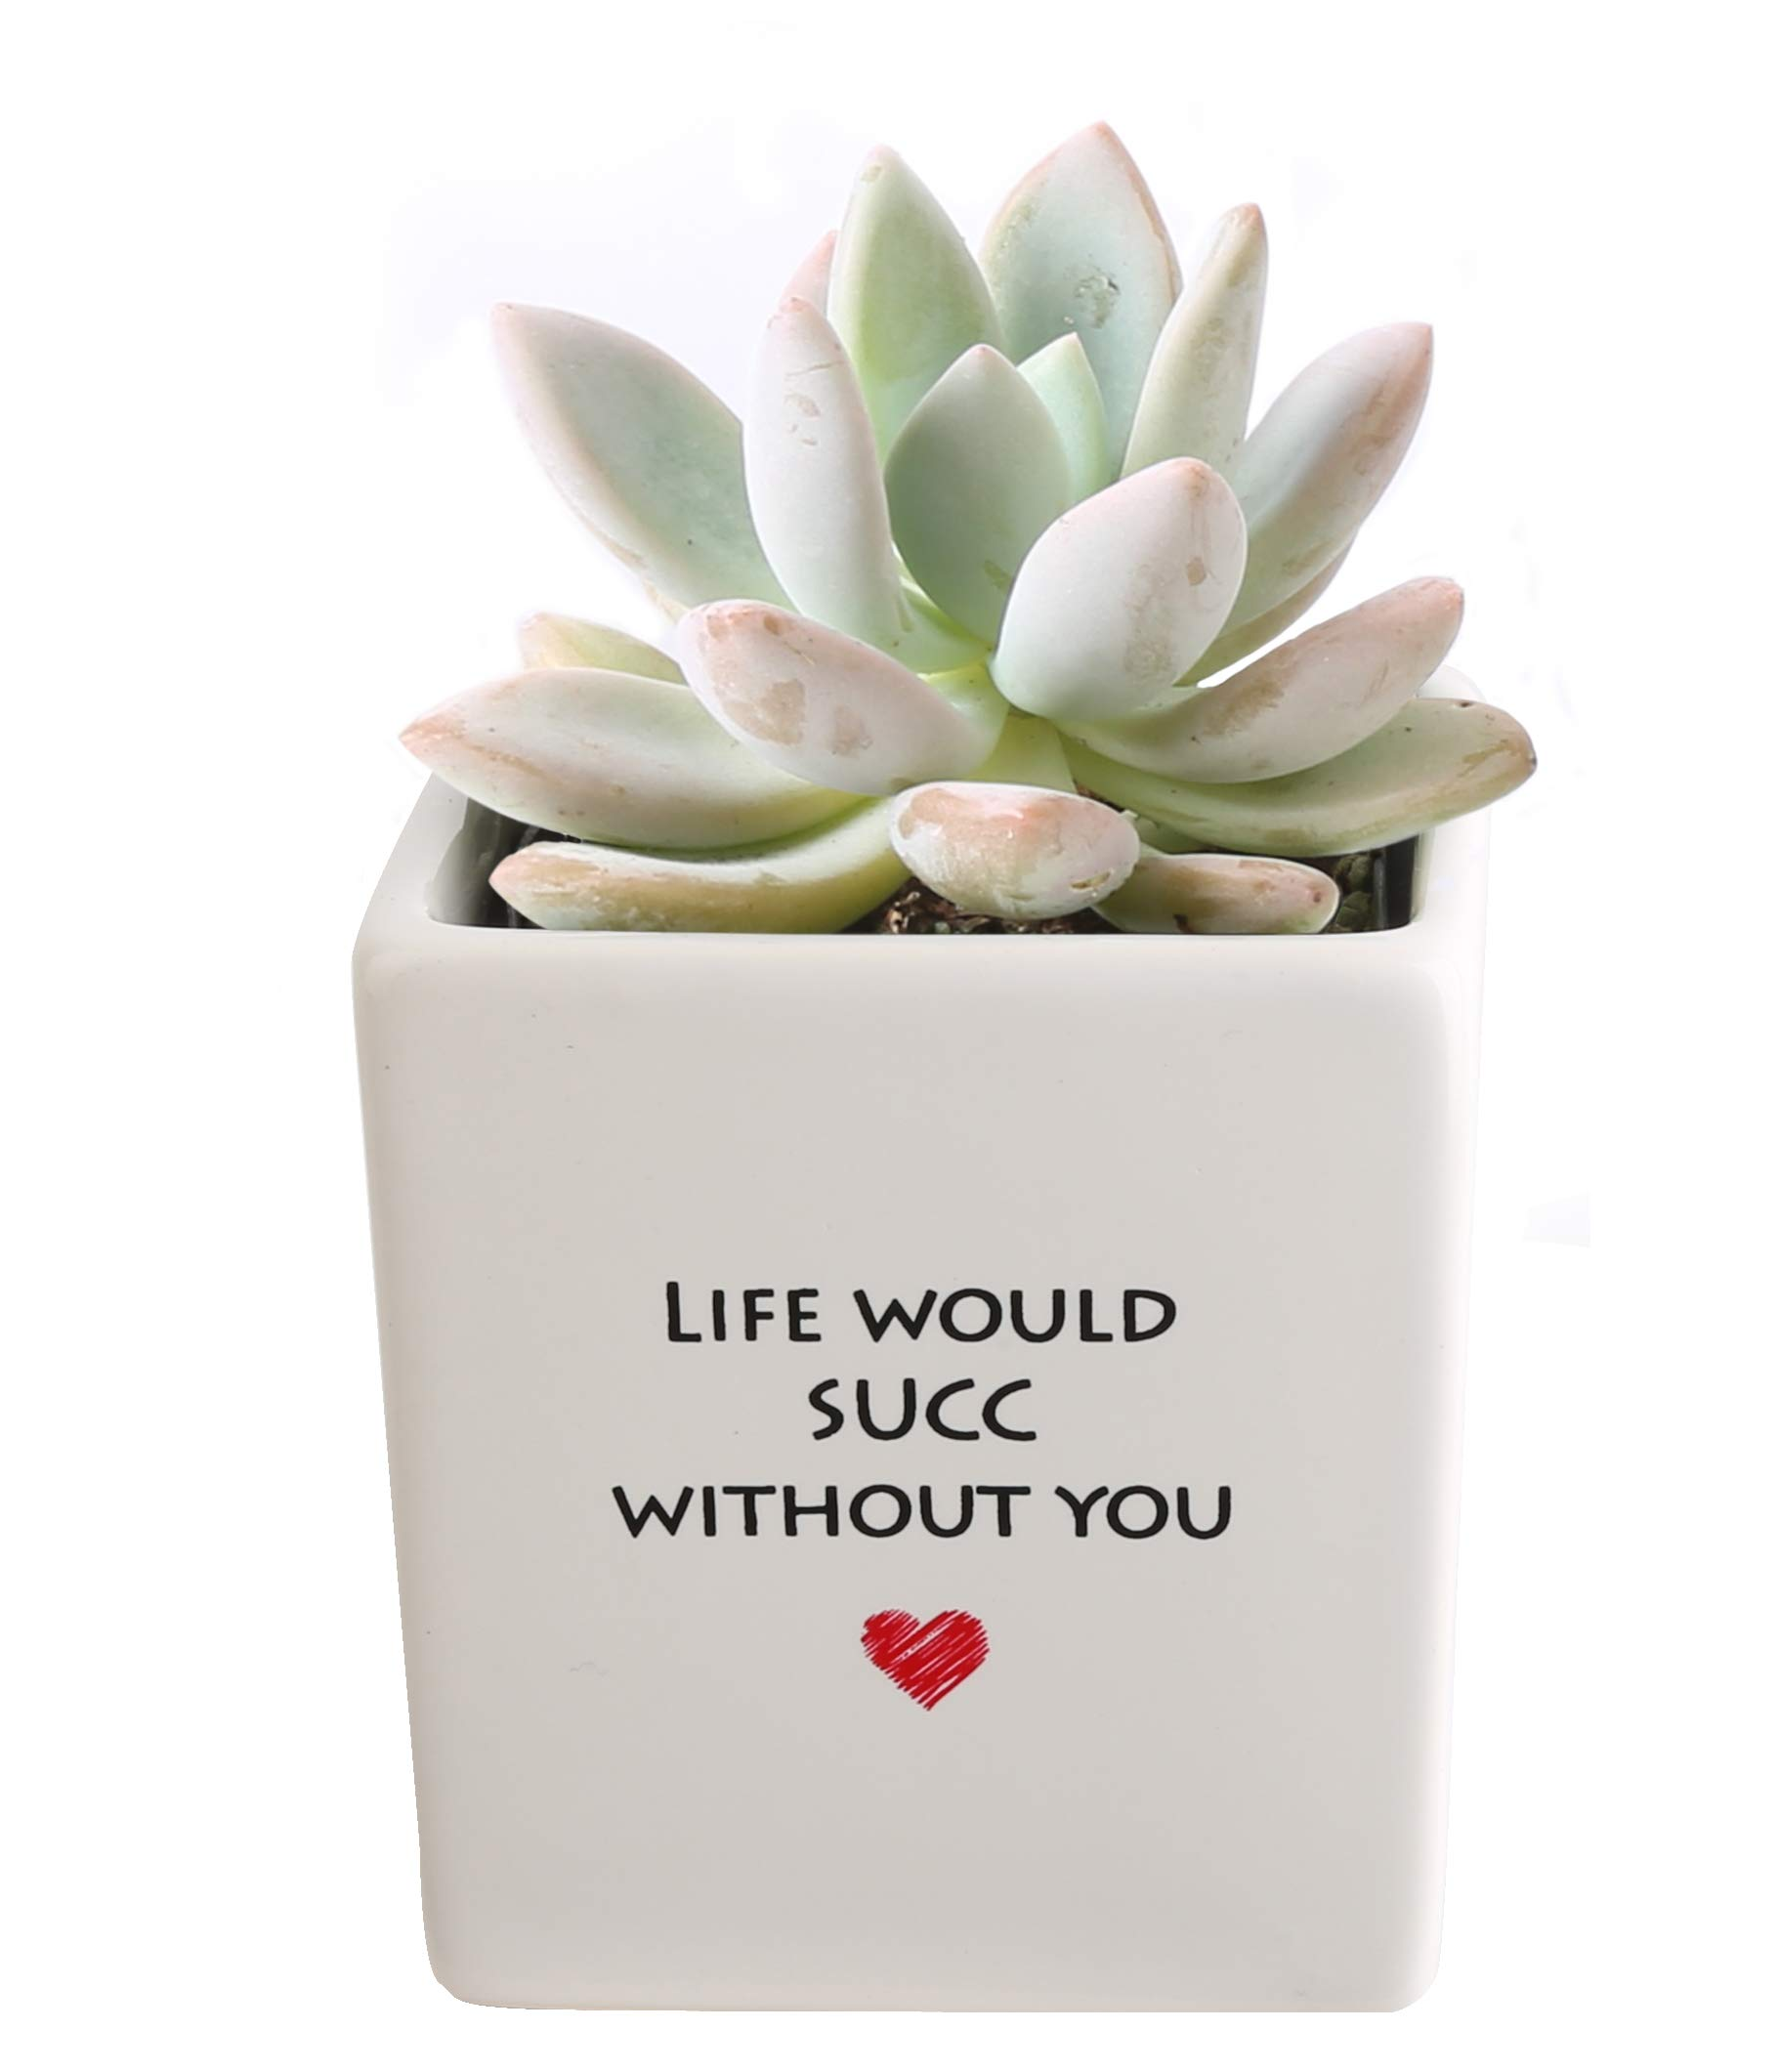 Costa Farms Live Mini Succulent Echeveria Indoor Plant Grower's Choice, Rosette, 4-Inches Tall, Life Ceramic by Costa Farms (Image #1)